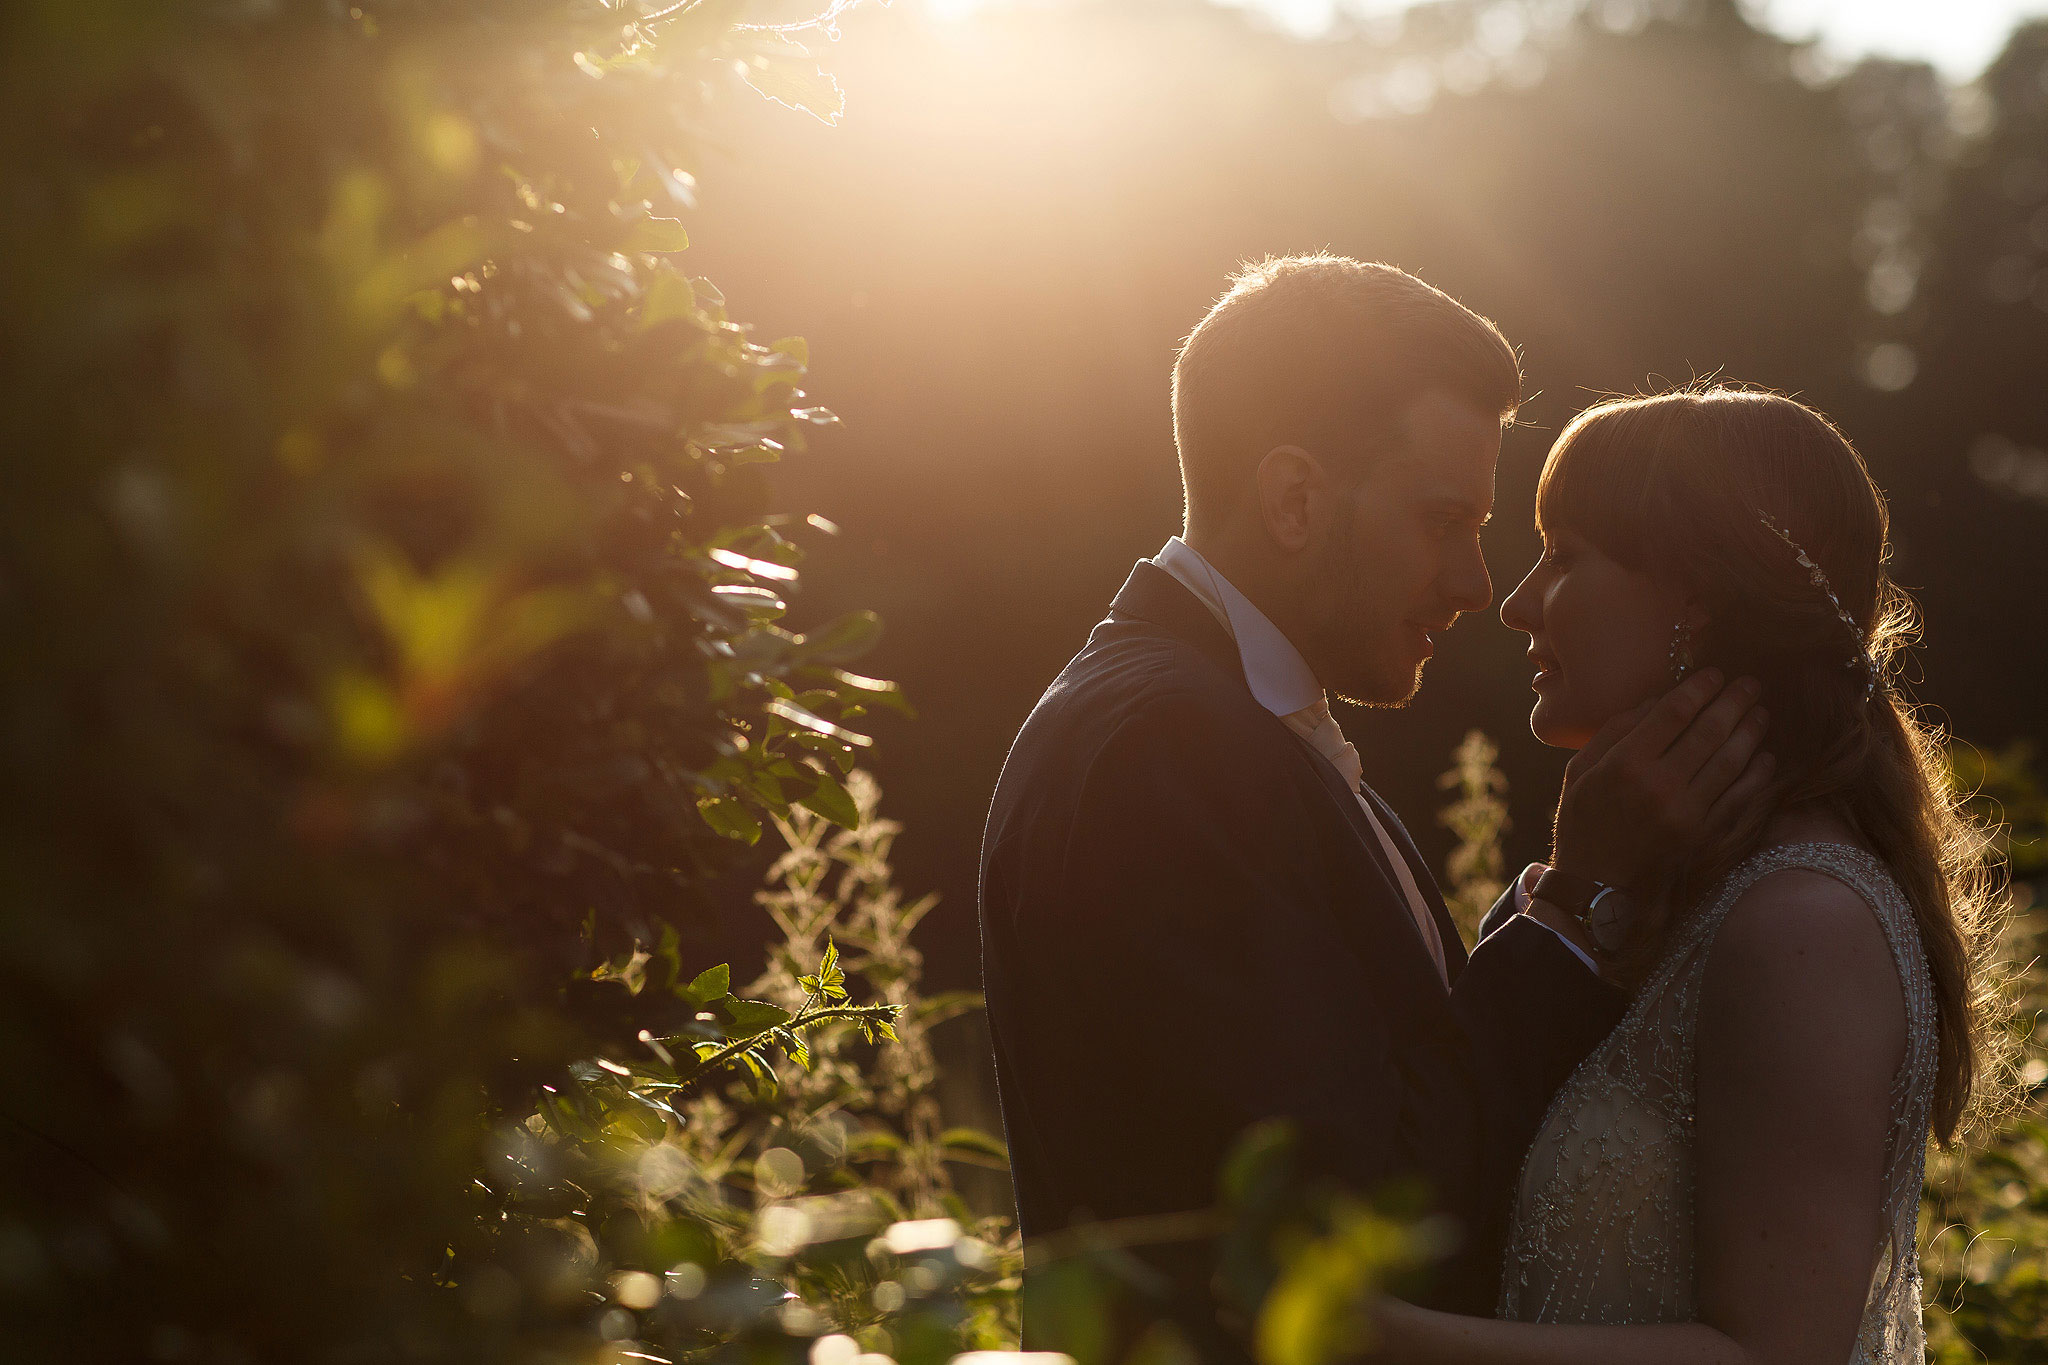 Bride and groom wedding day portraits in gorgeous sunlight in the gardens - The Villa at Wrea Green Wedding Photography - Toni Darcy Photography